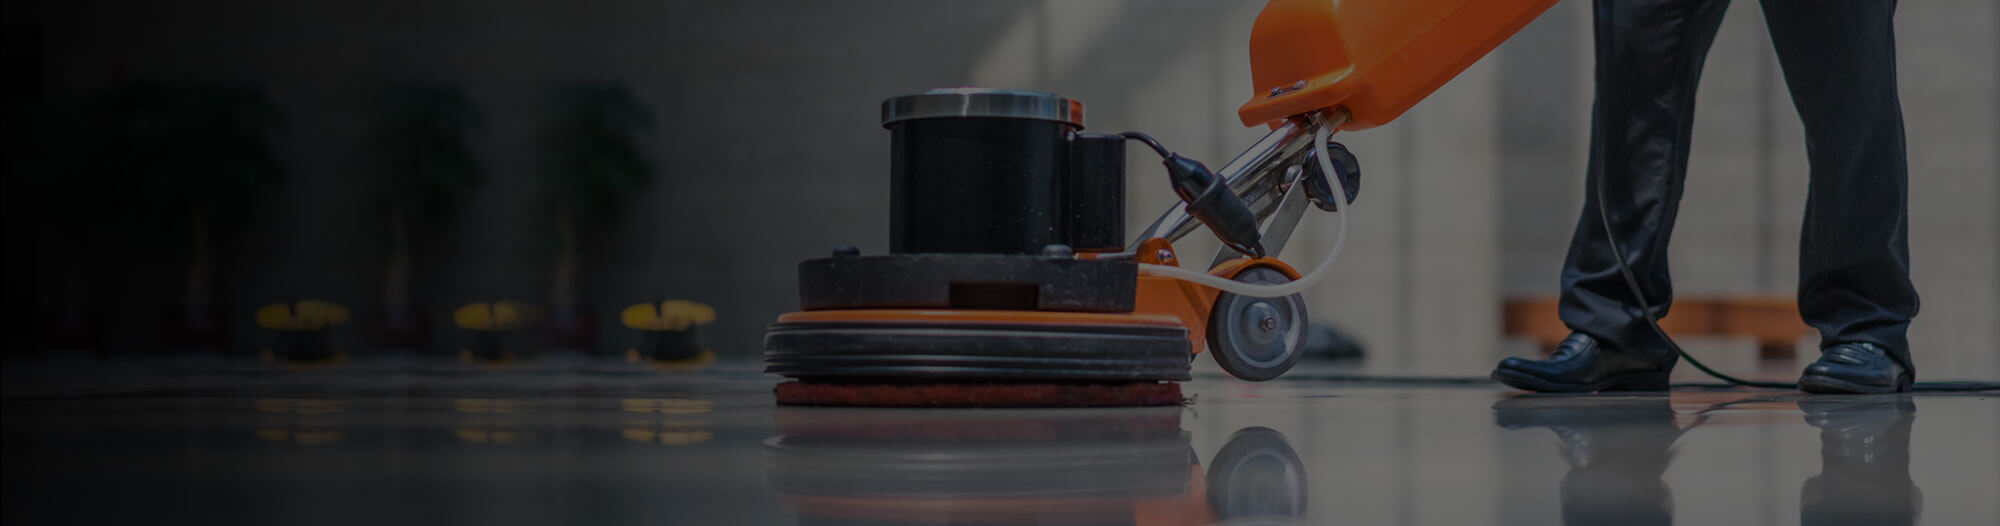 How Commercial Cleaning Services Stop Pest Infestation